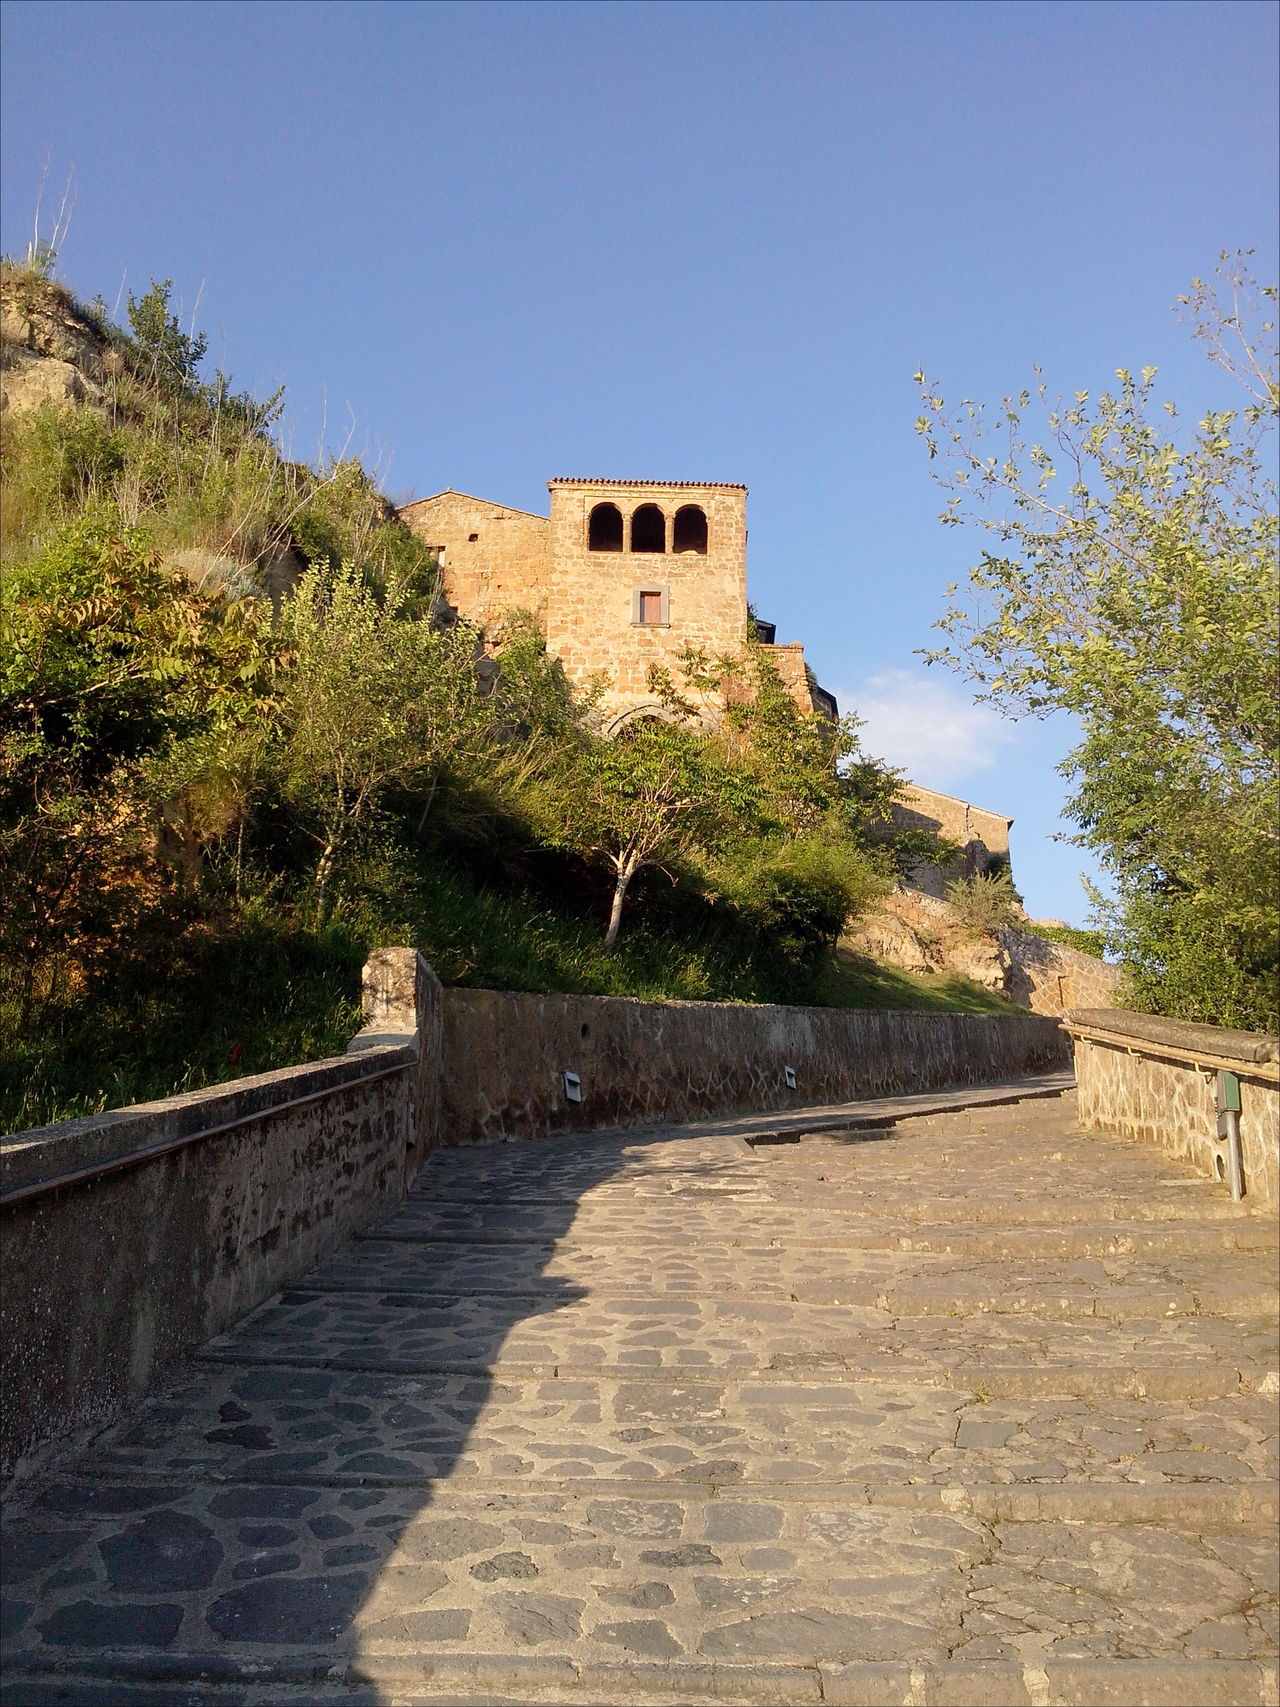 Ancient Architecture Architecture Blue Sky Bridge - Man Made Structure Built Structure Civita Di Bagnoregio Cloudy Sky Footpath Handrails On Top Of A Mountain Pavement Shadows & Lights The City That Is Dying The Past The Way Forward Tuff Tufo Under The Sun Vegetation World Monuments Watch